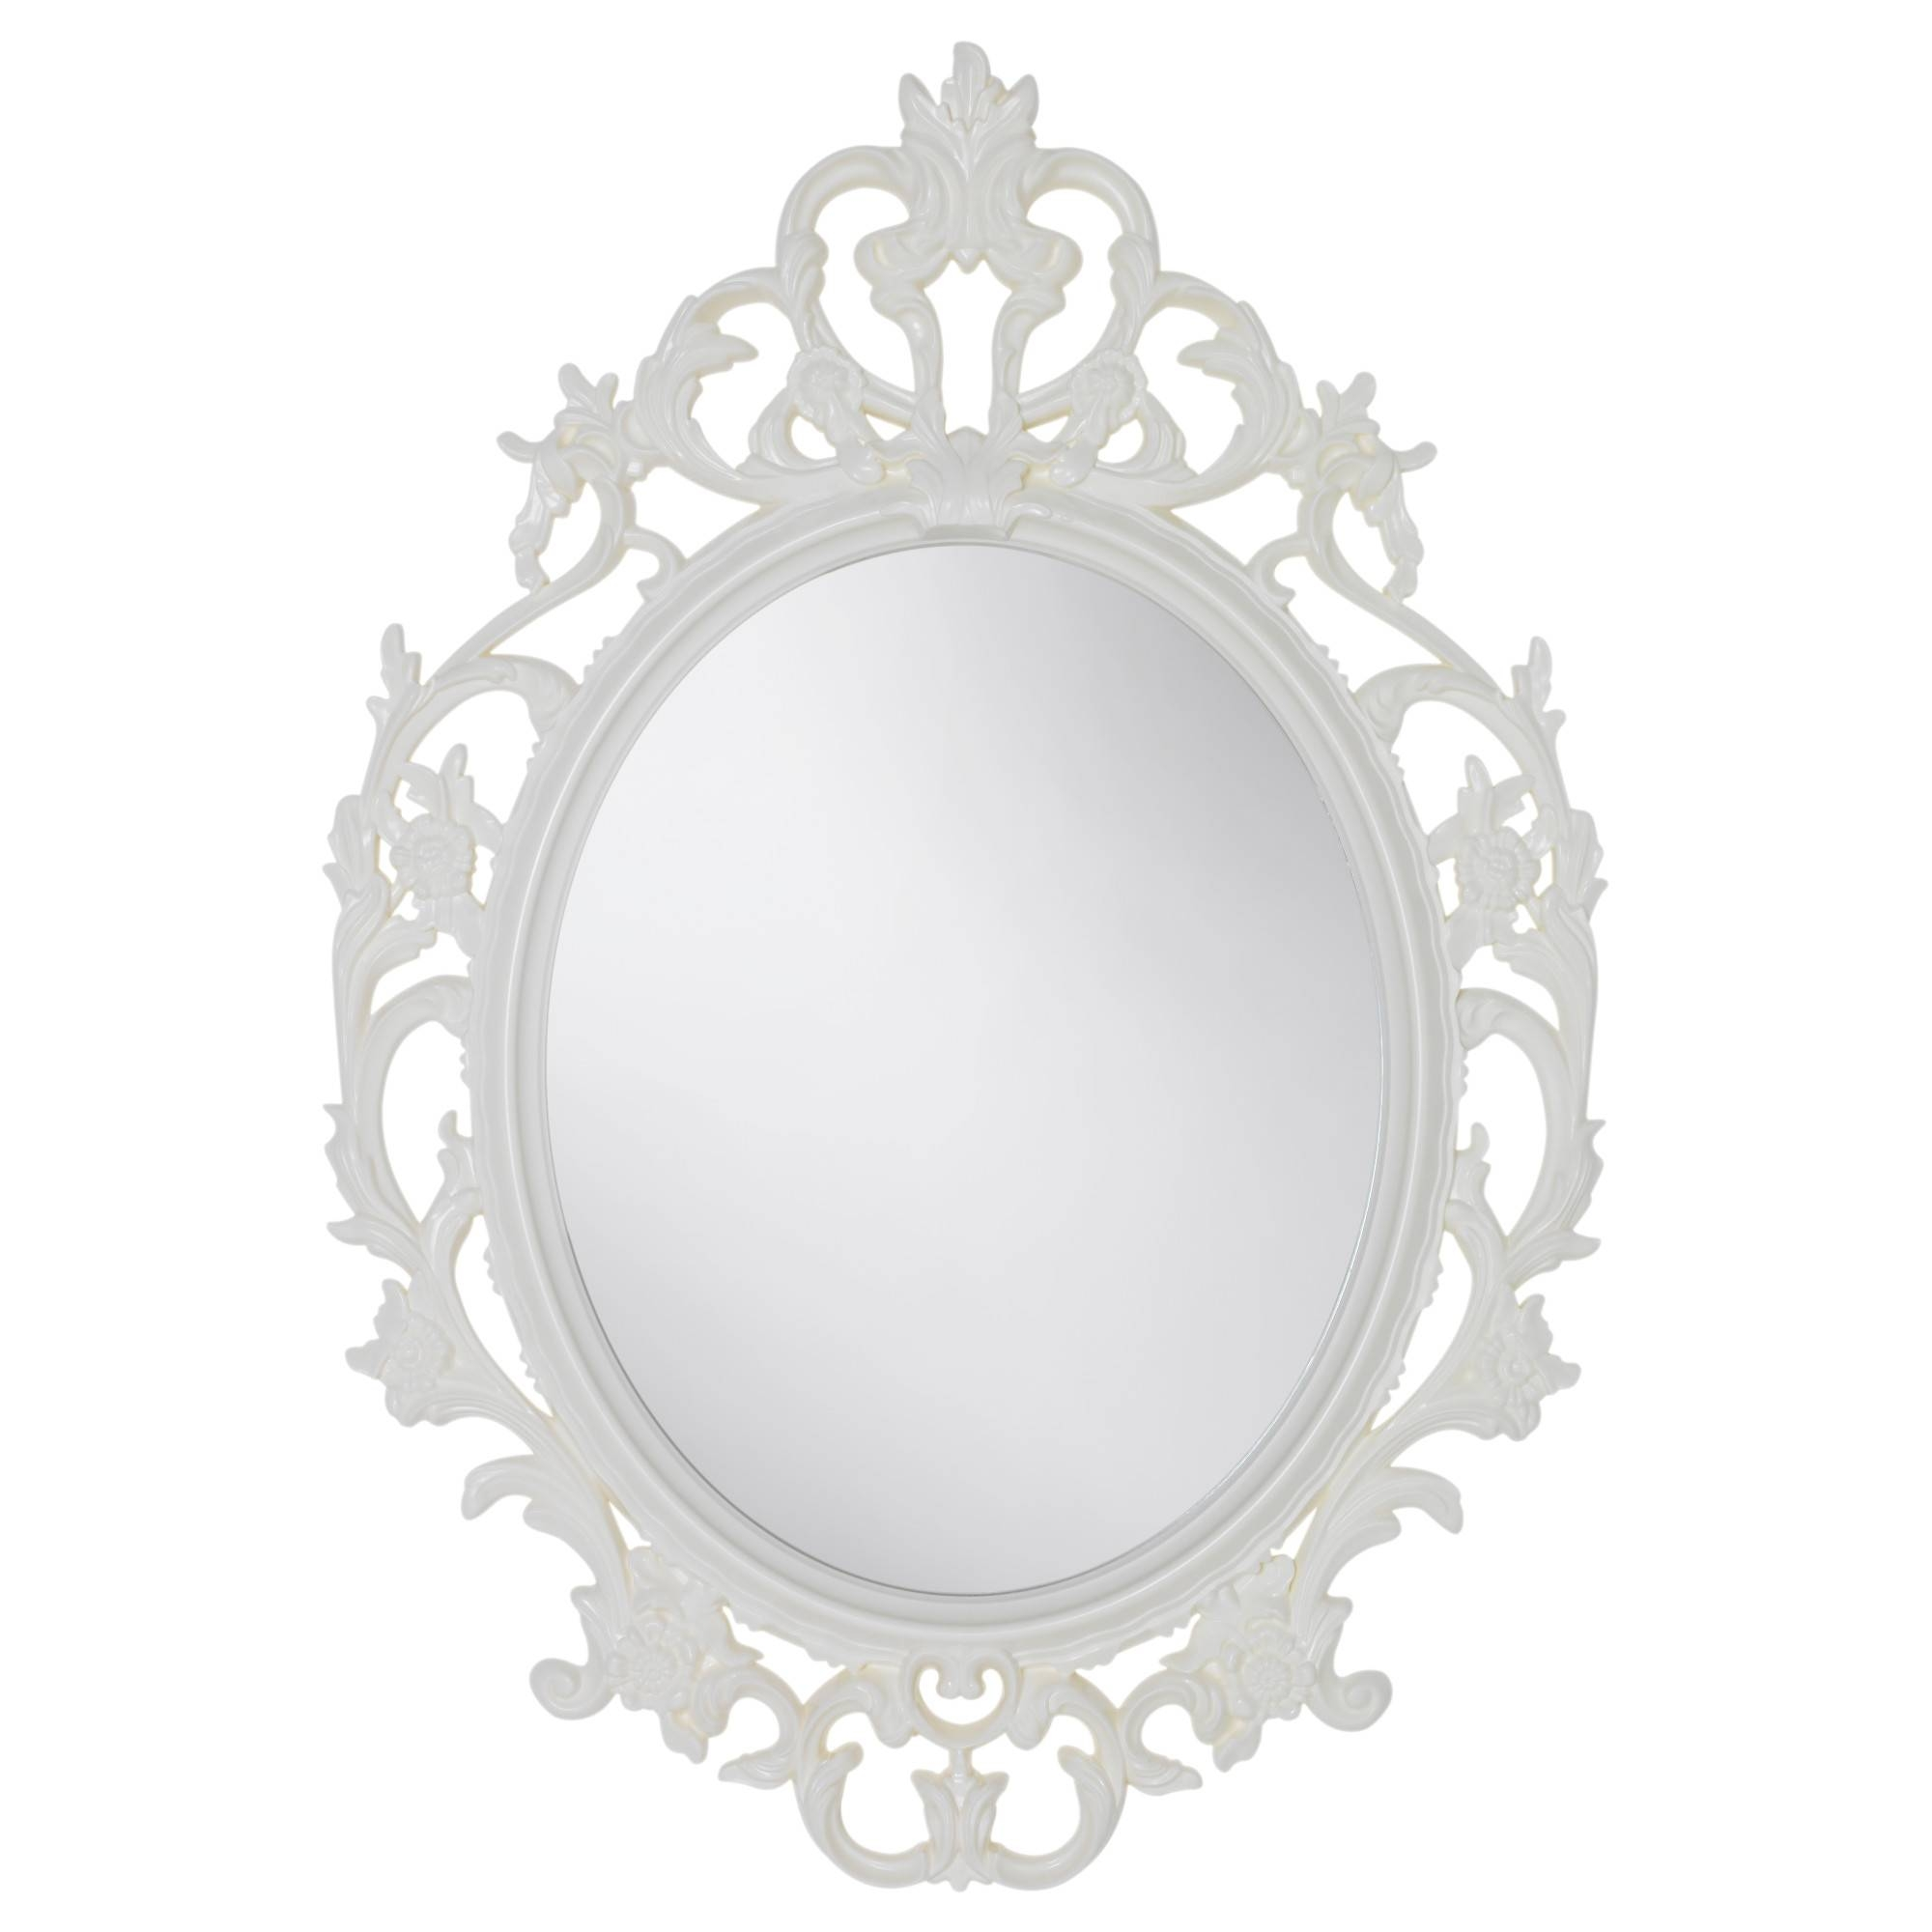 Mirrors - Floor, Table & Wall Mirrors - Ikea with Baroque White Mirrors (Image 16 of 25)